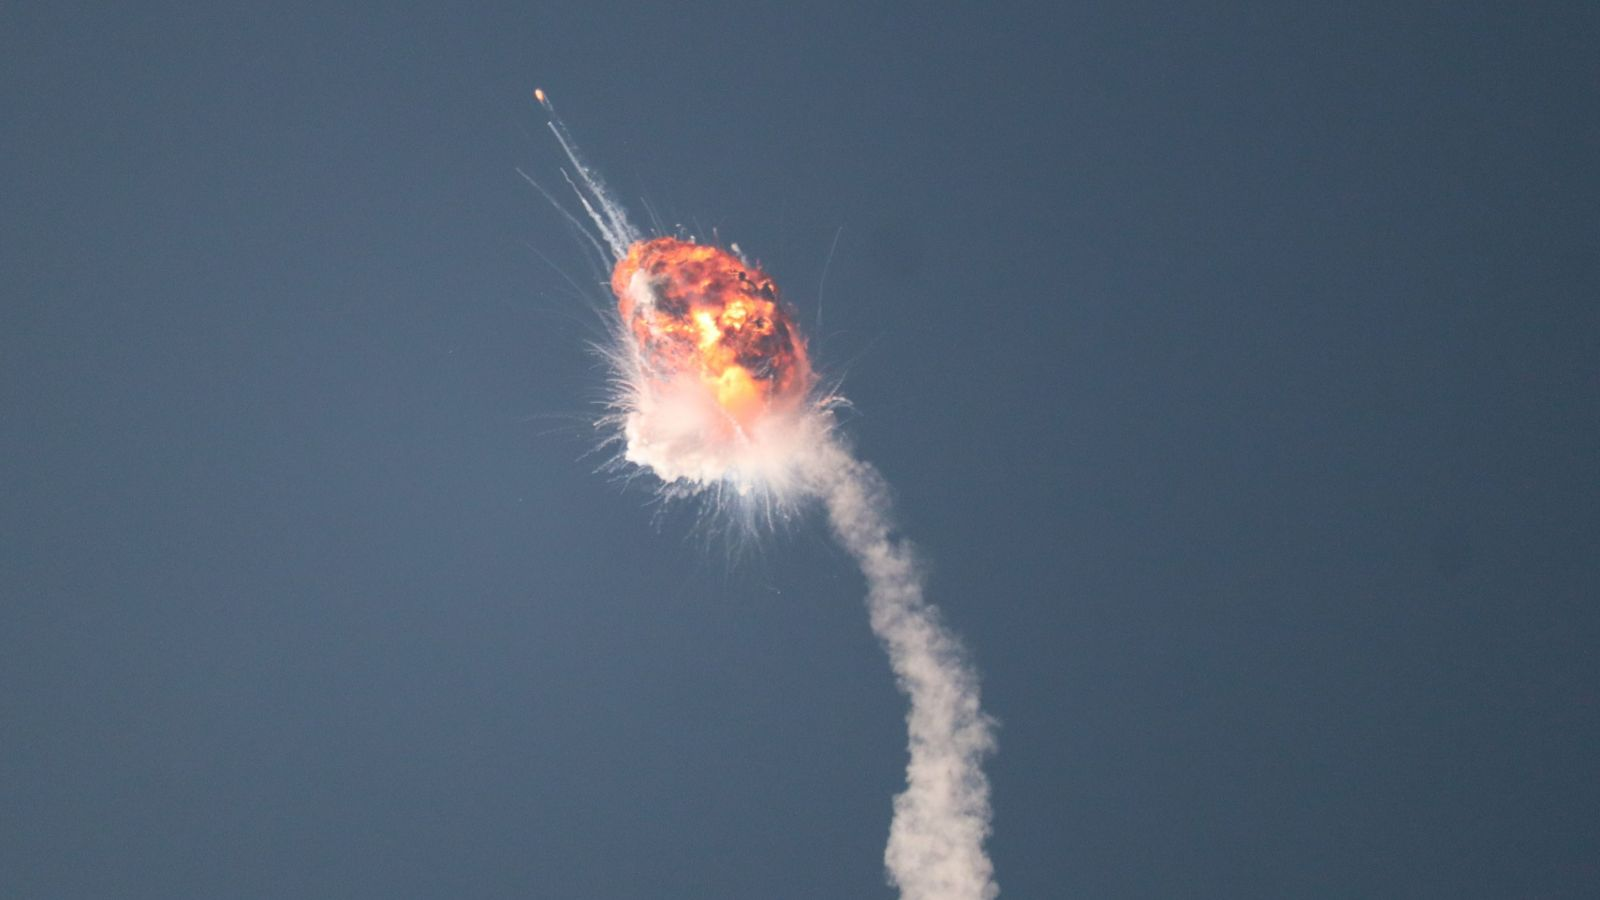 Several minutes after launch, Firefly Aerospace's first Alpha rocket exploded. Credit: Lavie Ohana / Space Scout (@wearespacescout)